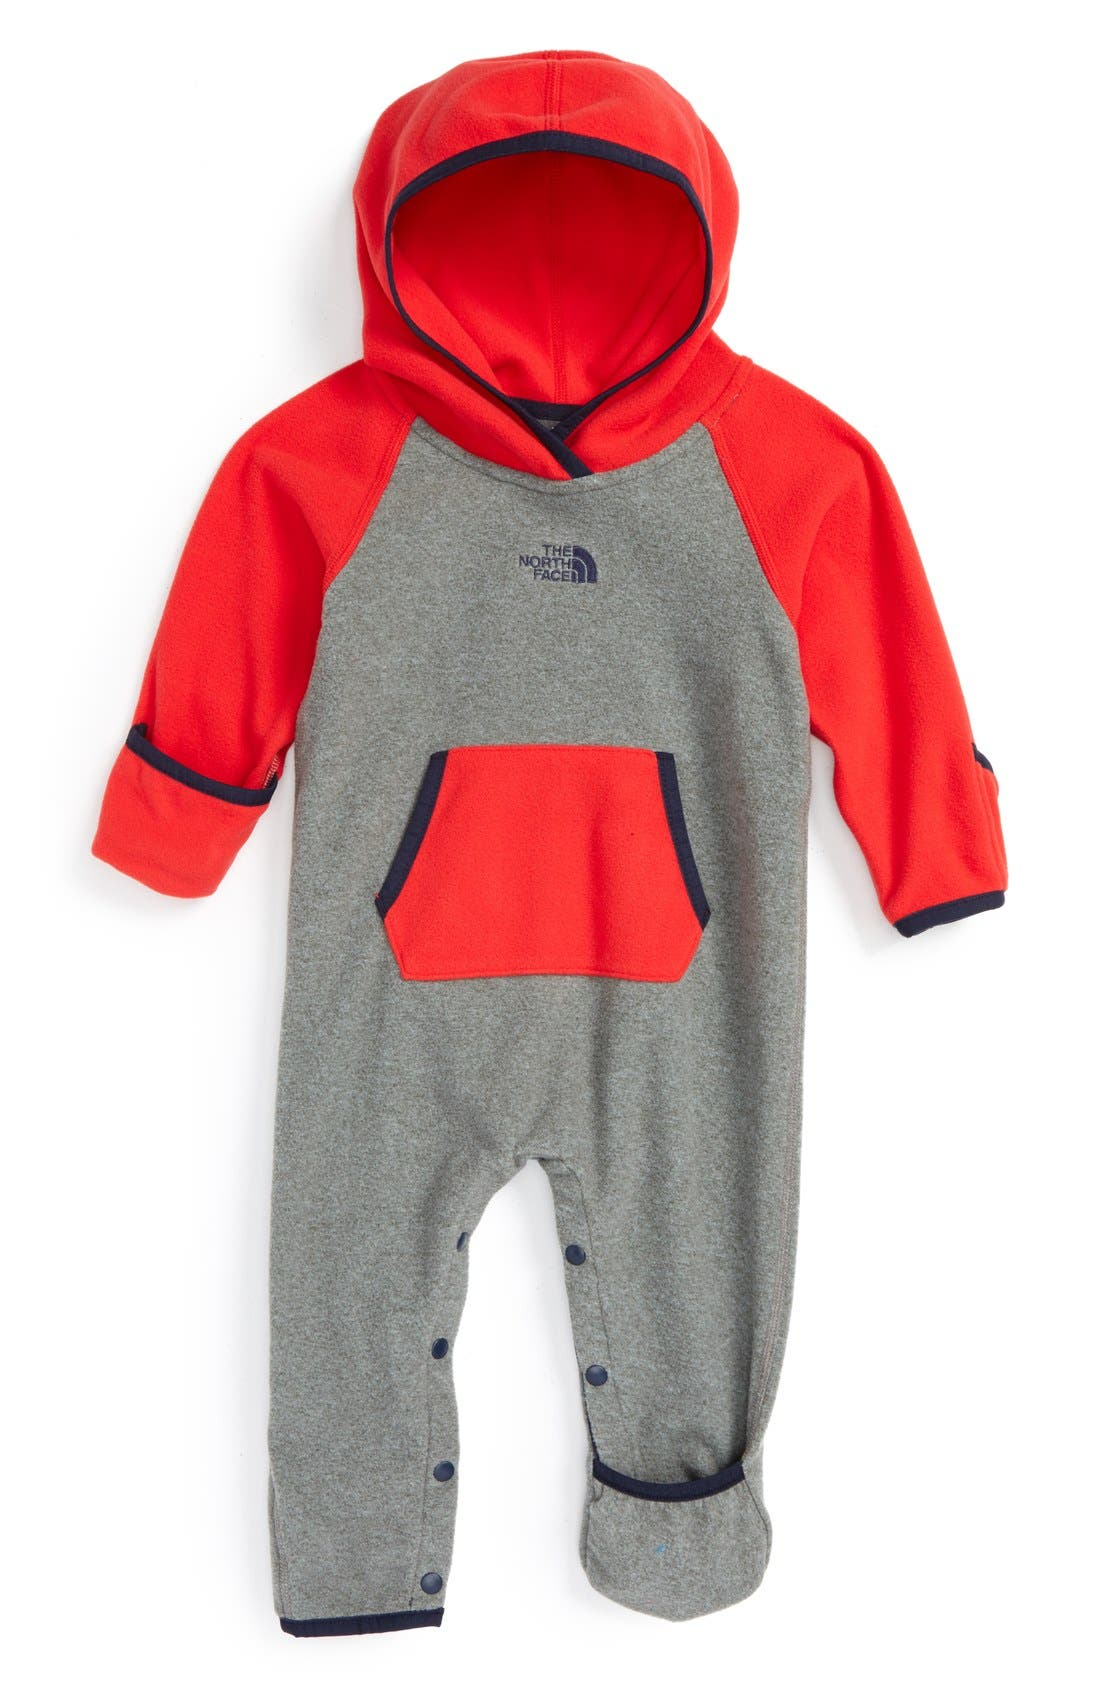 THE NORTH FACE, 'Glacier' Hooded Romper, Main thumbnail 1, color, 030